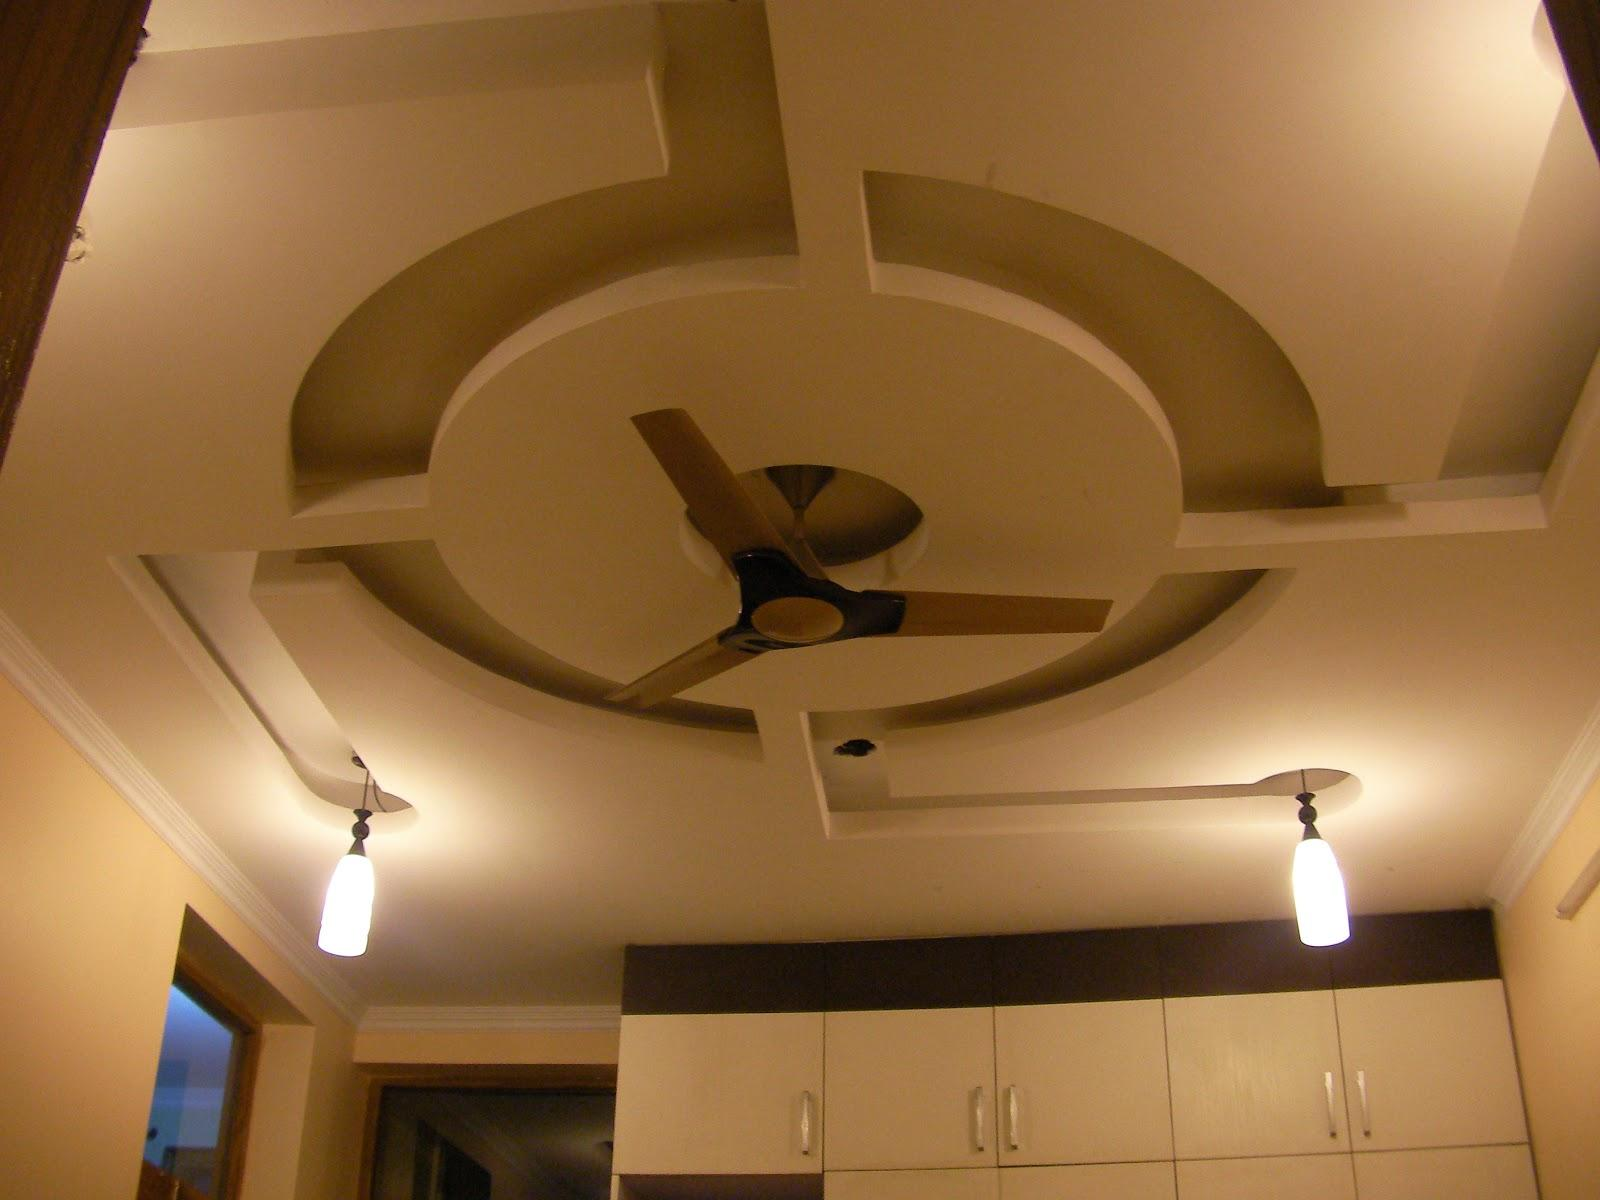 Pop Ceiling Design With A Round Design In The Center